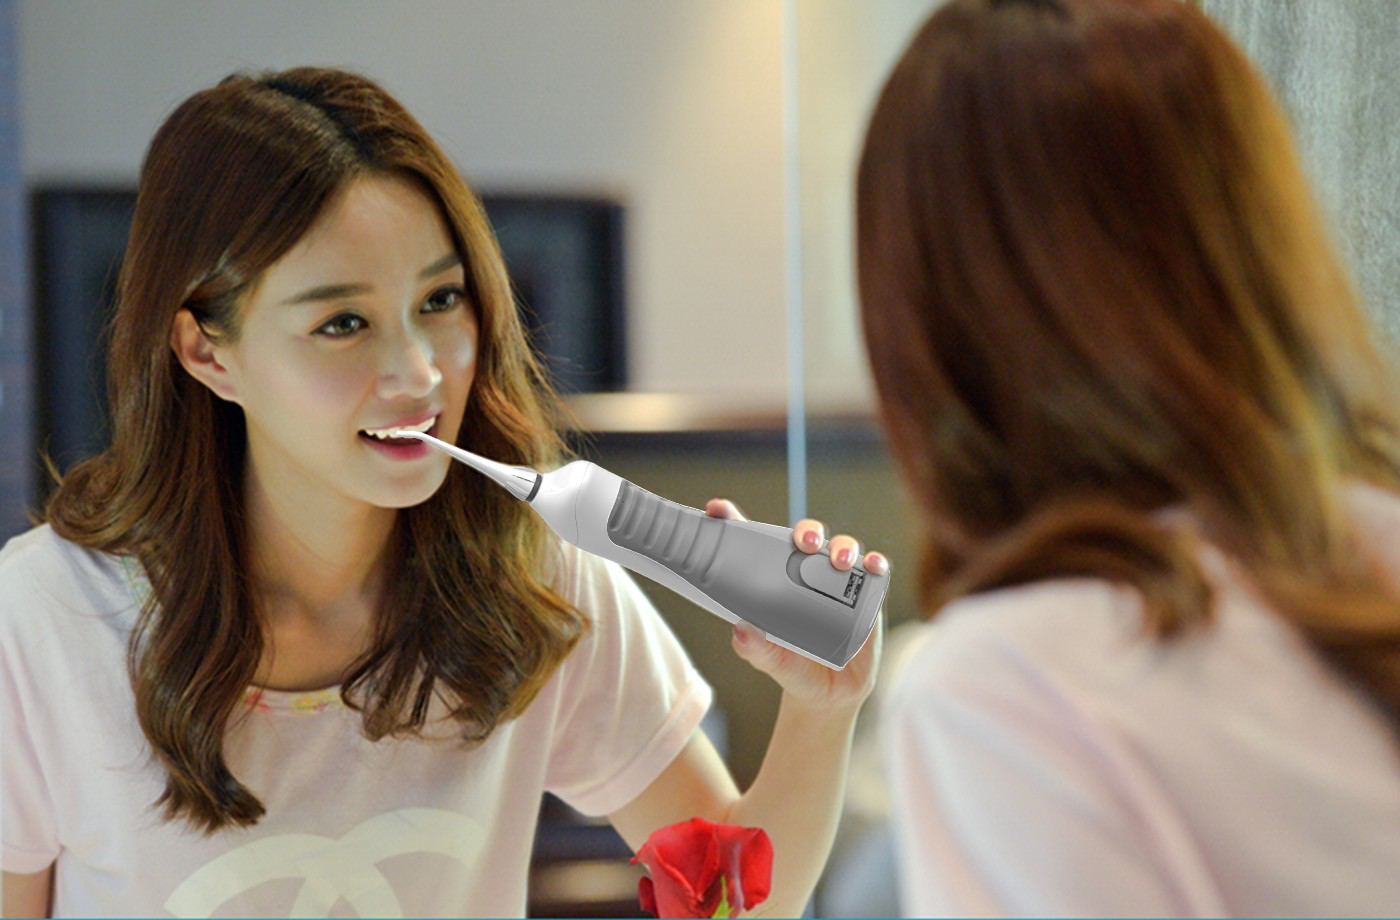 Woman using an oral irrigator